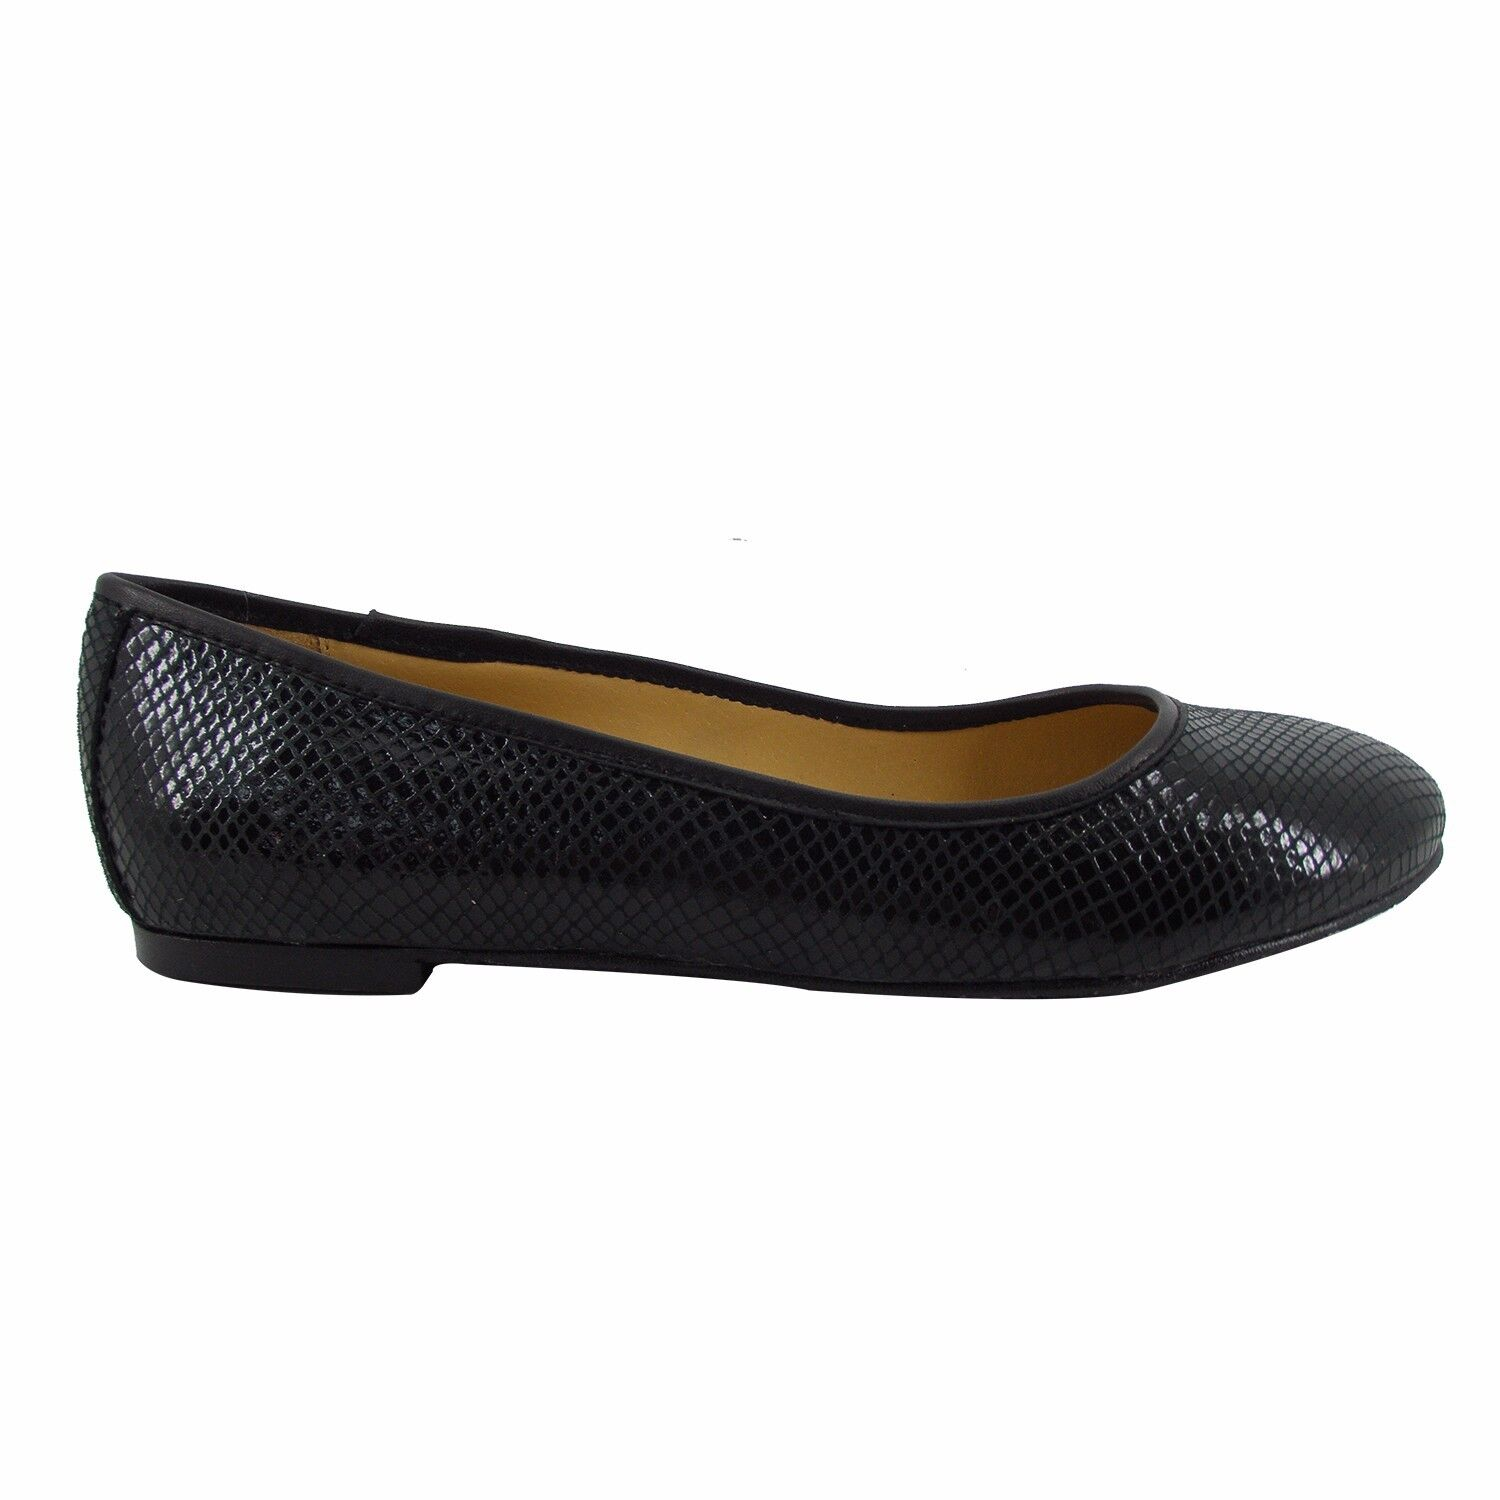 Size 10 10 10 Women's Black Snake Print Leather Ballet Flats MADE IN SPAIN big shoes 4166b1